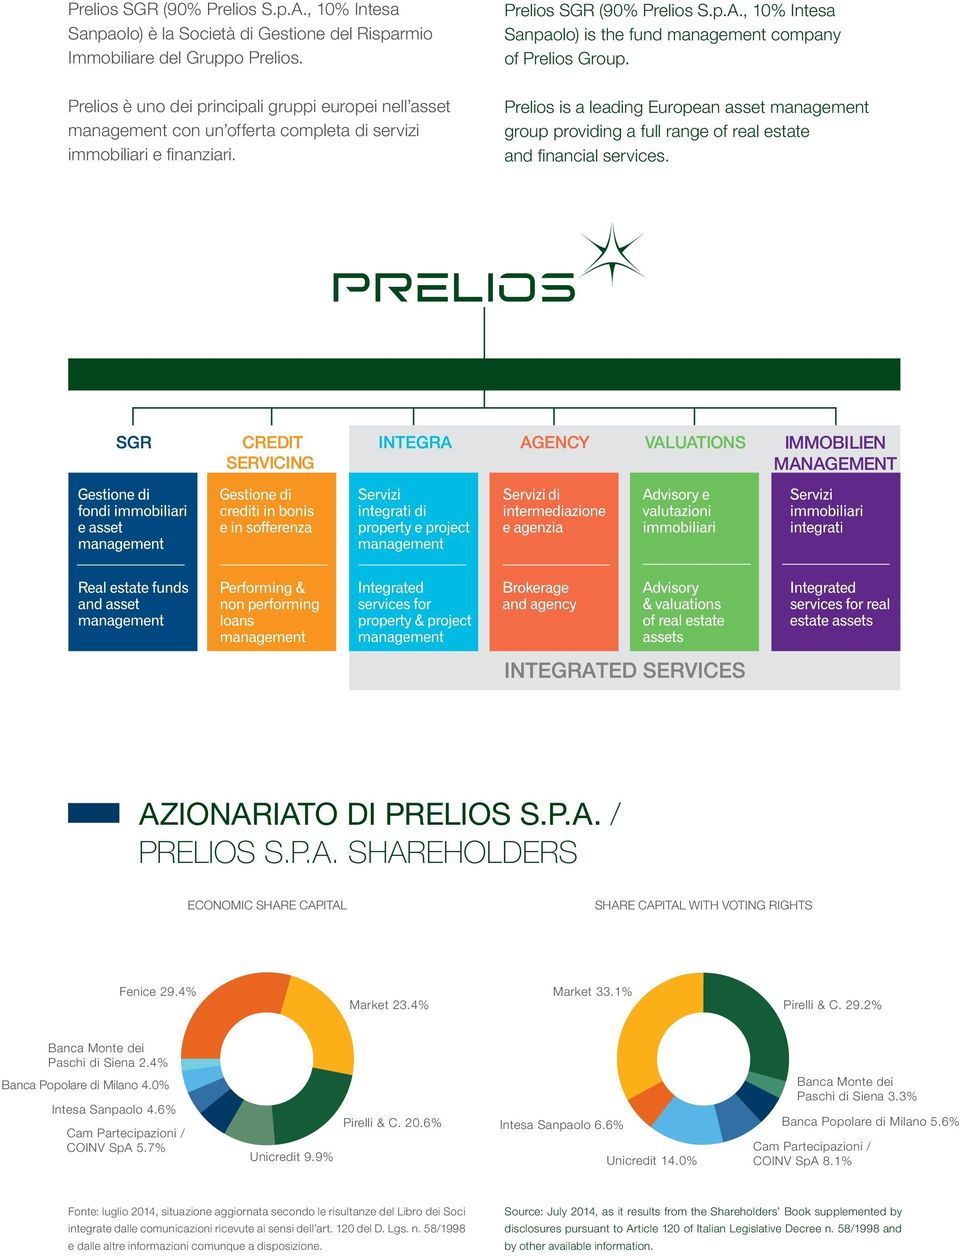 Prelios is a leading European asset management group providing a full range of real estate and financial services. IMMOBILIEN MANAGEMENT azionariato di prelios s.p.a. / prelios s.p.a. shareholders ECONOMIC SHARE CAPITAL SHARE CAPITAL WITH VOTING RIGHTS Fenice 29.